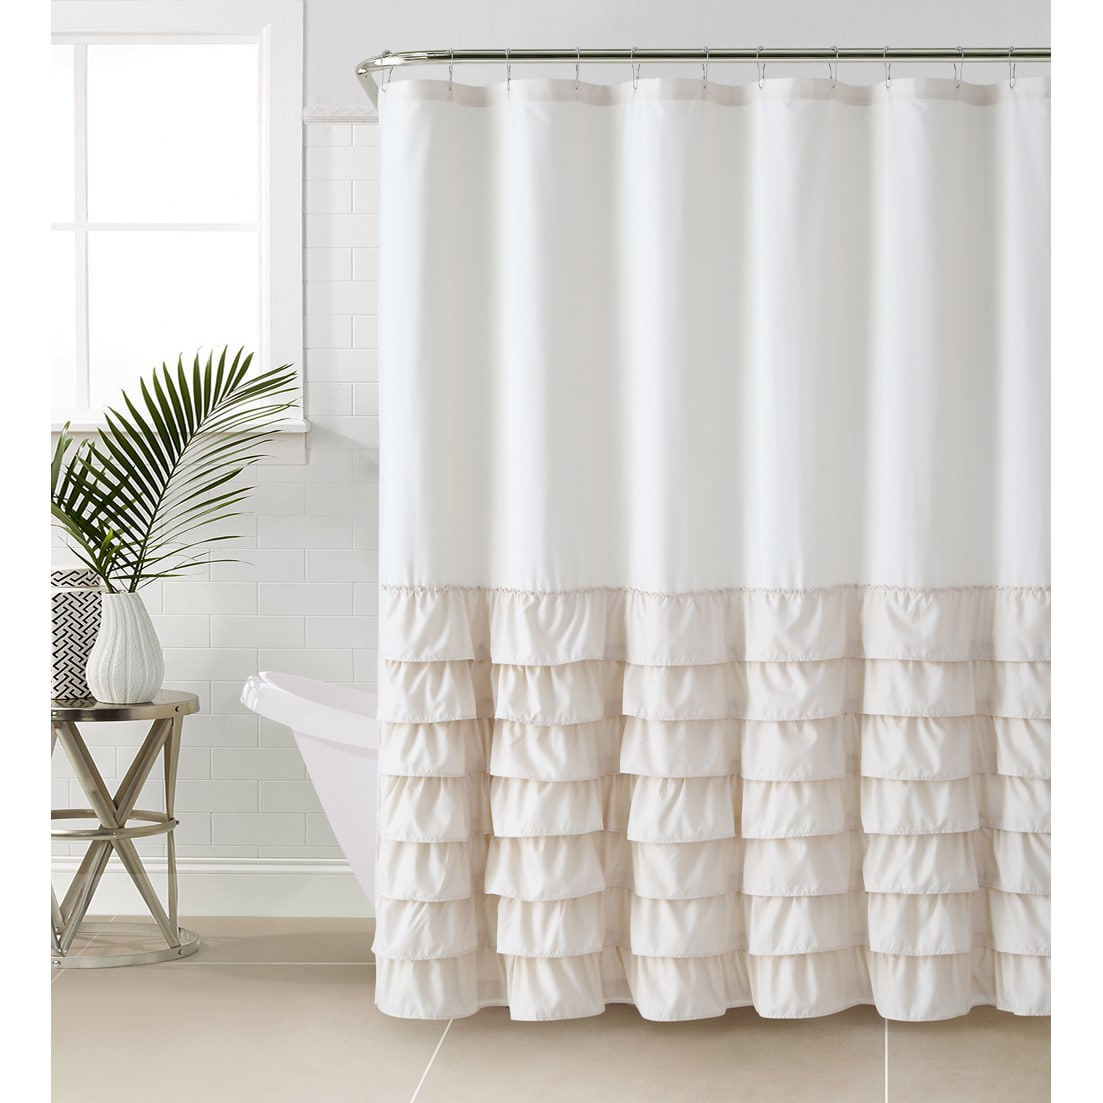 Gray And White Ruffle Shower Curtain • Shower Curtains Ideas